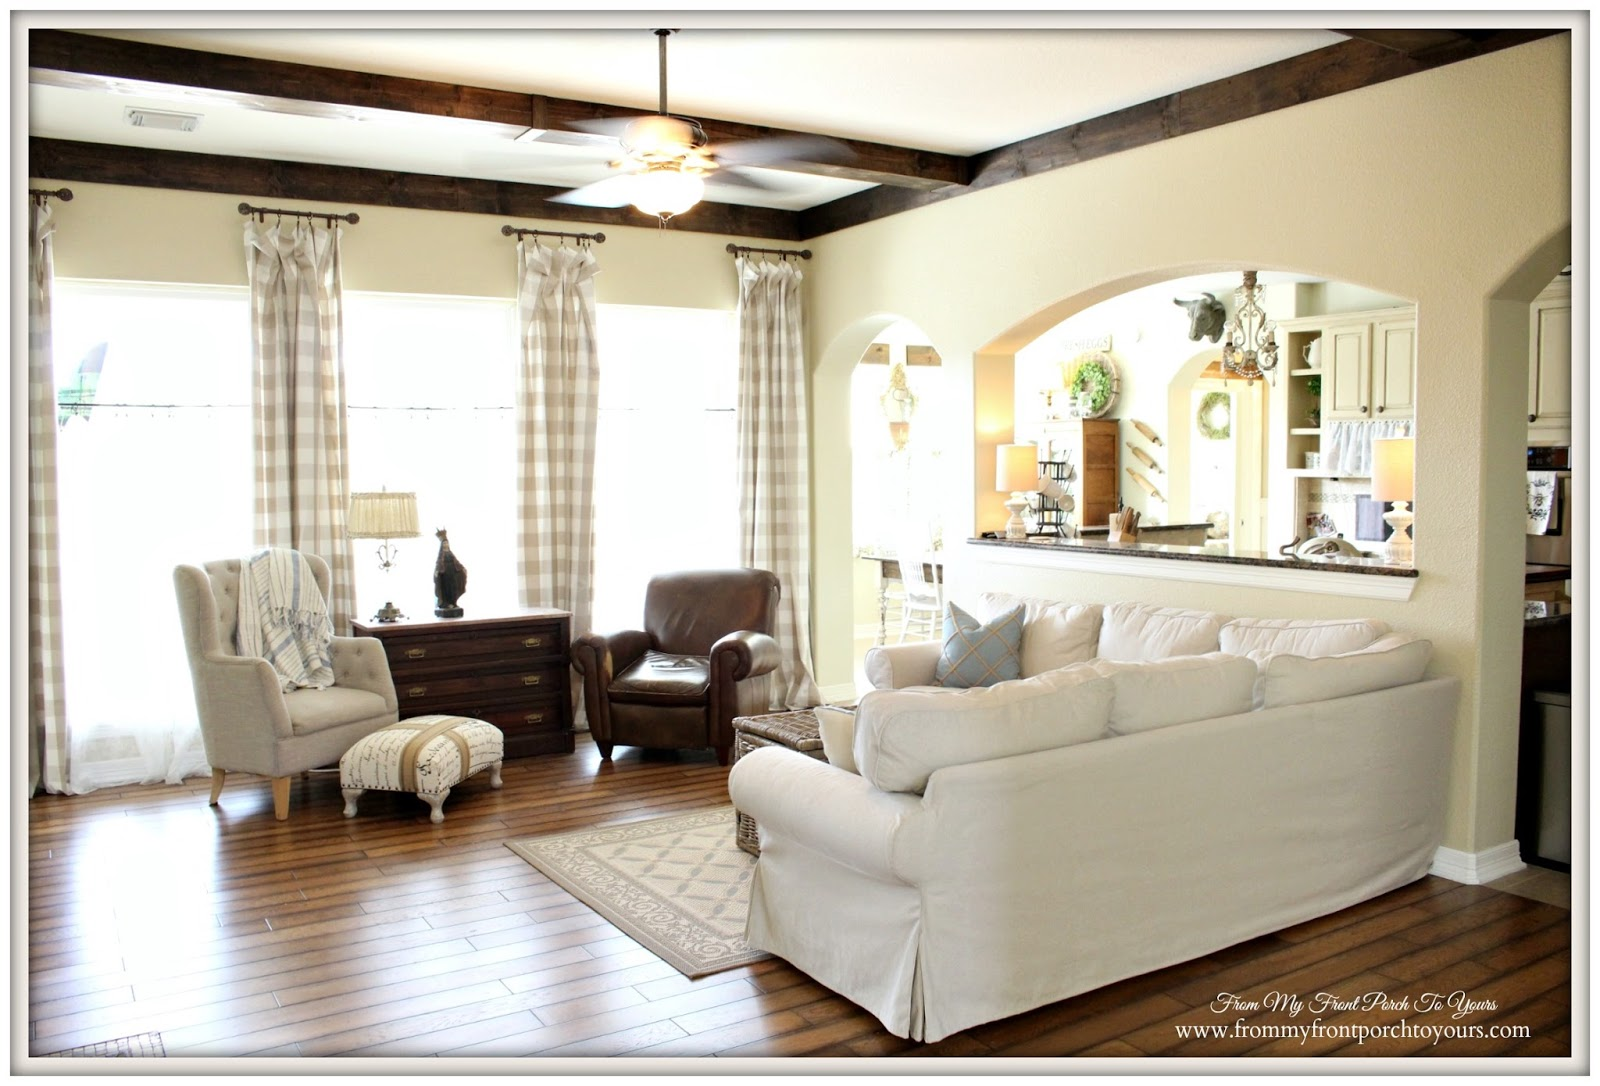 From My Front Porch To Yours: Farmhouse Living Room With ... on Farmhouse Curtain Ideas For Living Room  id=51738